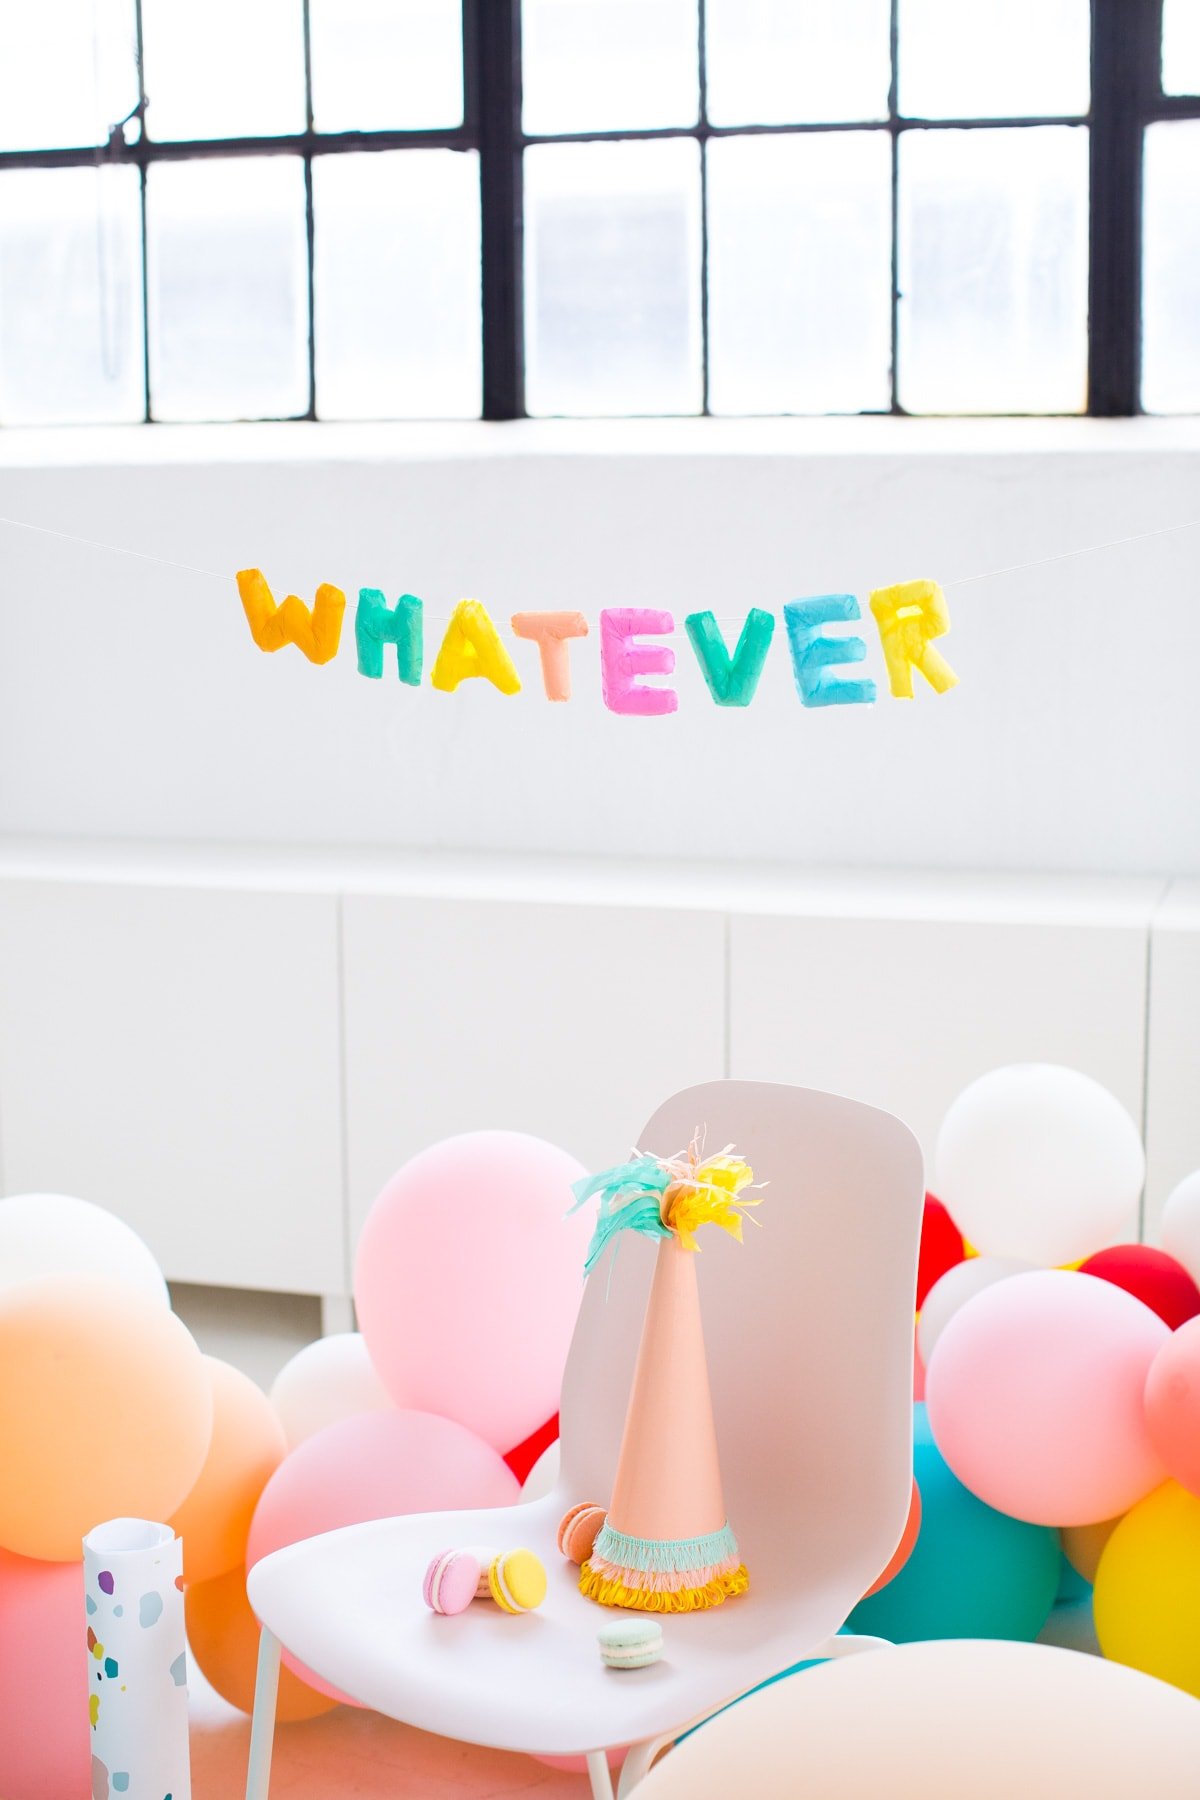 whatever! letter balloons that won't deflate - Faux Balloon DIY Letter Garland by Houston lifestyle blogger Ashley Rose of Sugar and Cloth #diy #balloons #balloongarland #garland #decor #party #ideas #howto